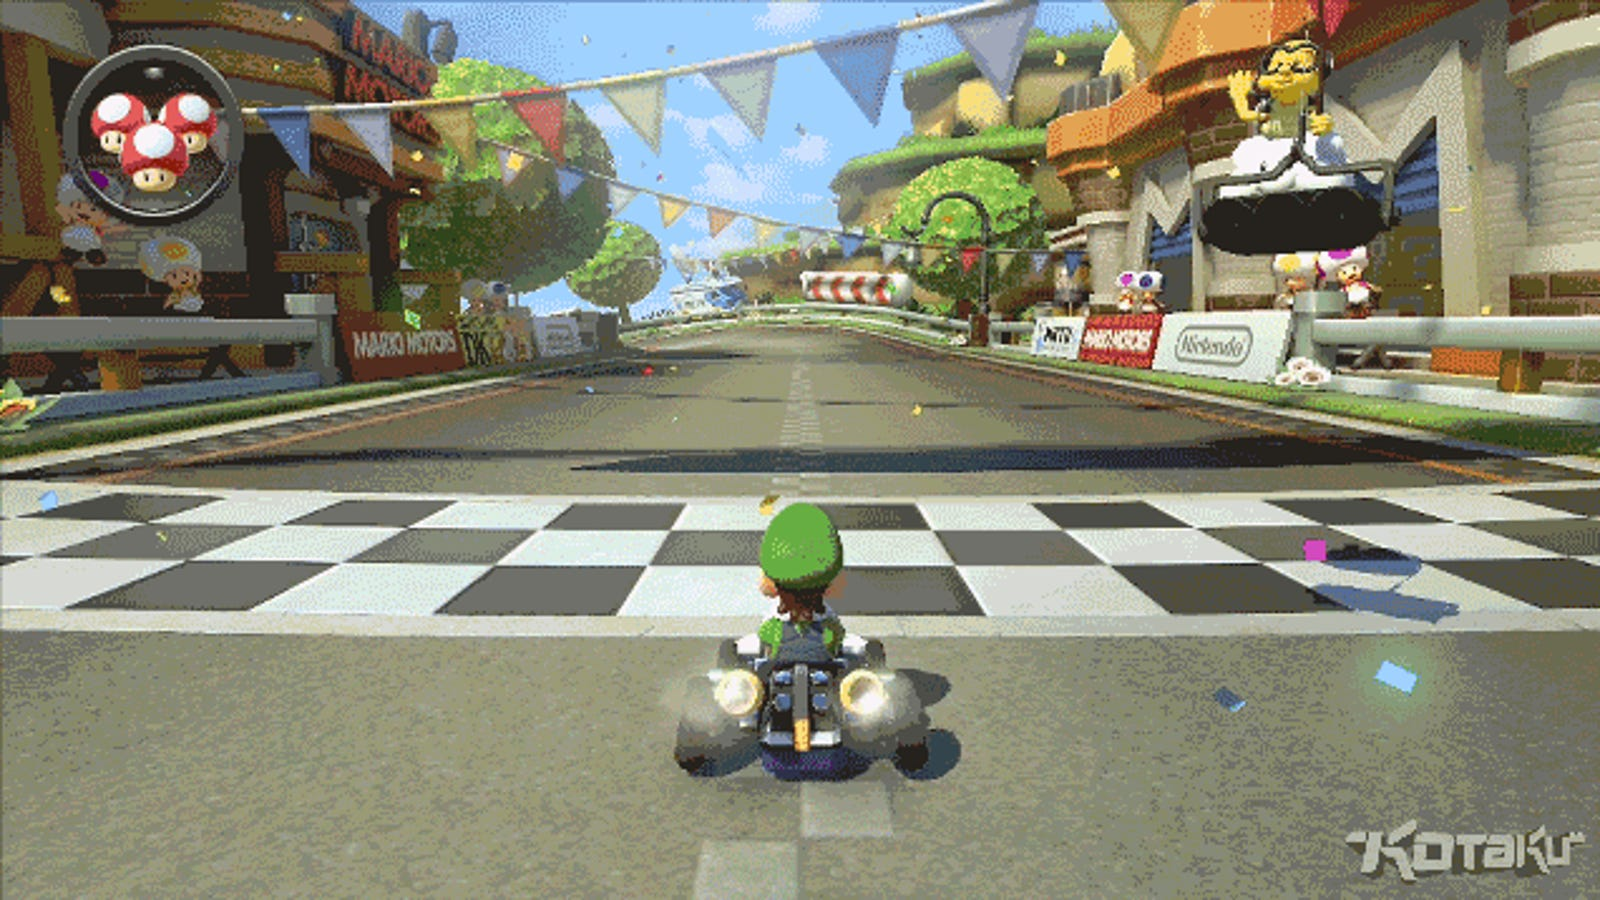 dbccc9112 How To Get A Perfect Starting Boost In Mario Kart 8